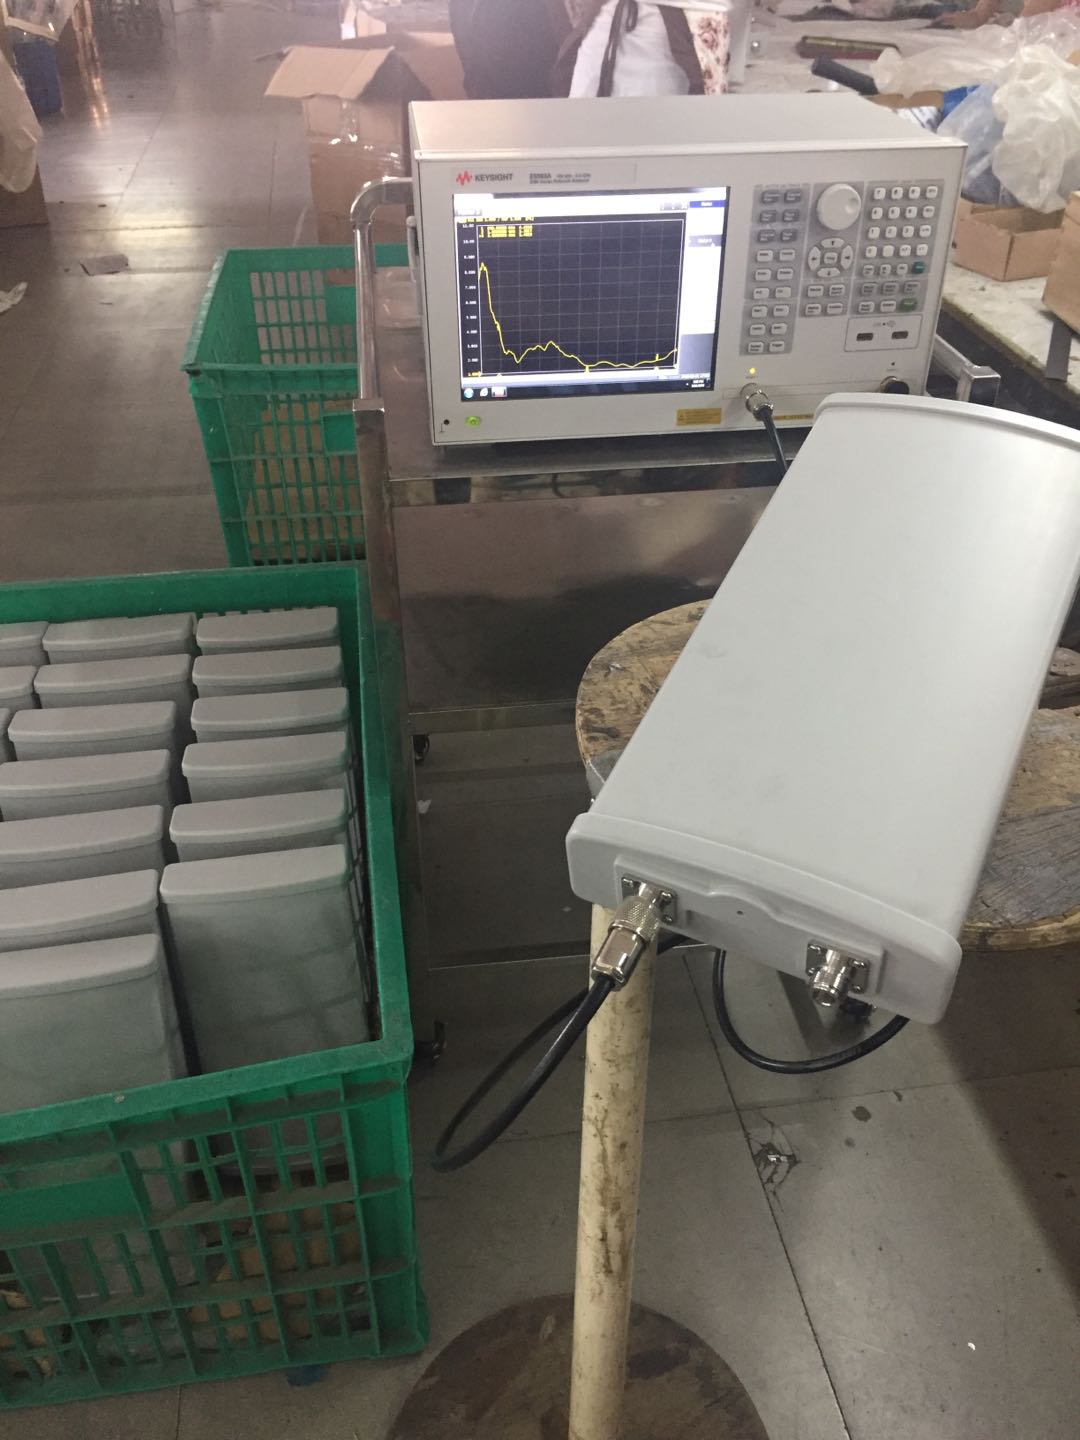 WH-LTE-D10X2 panel 4G mimo antenna on producing